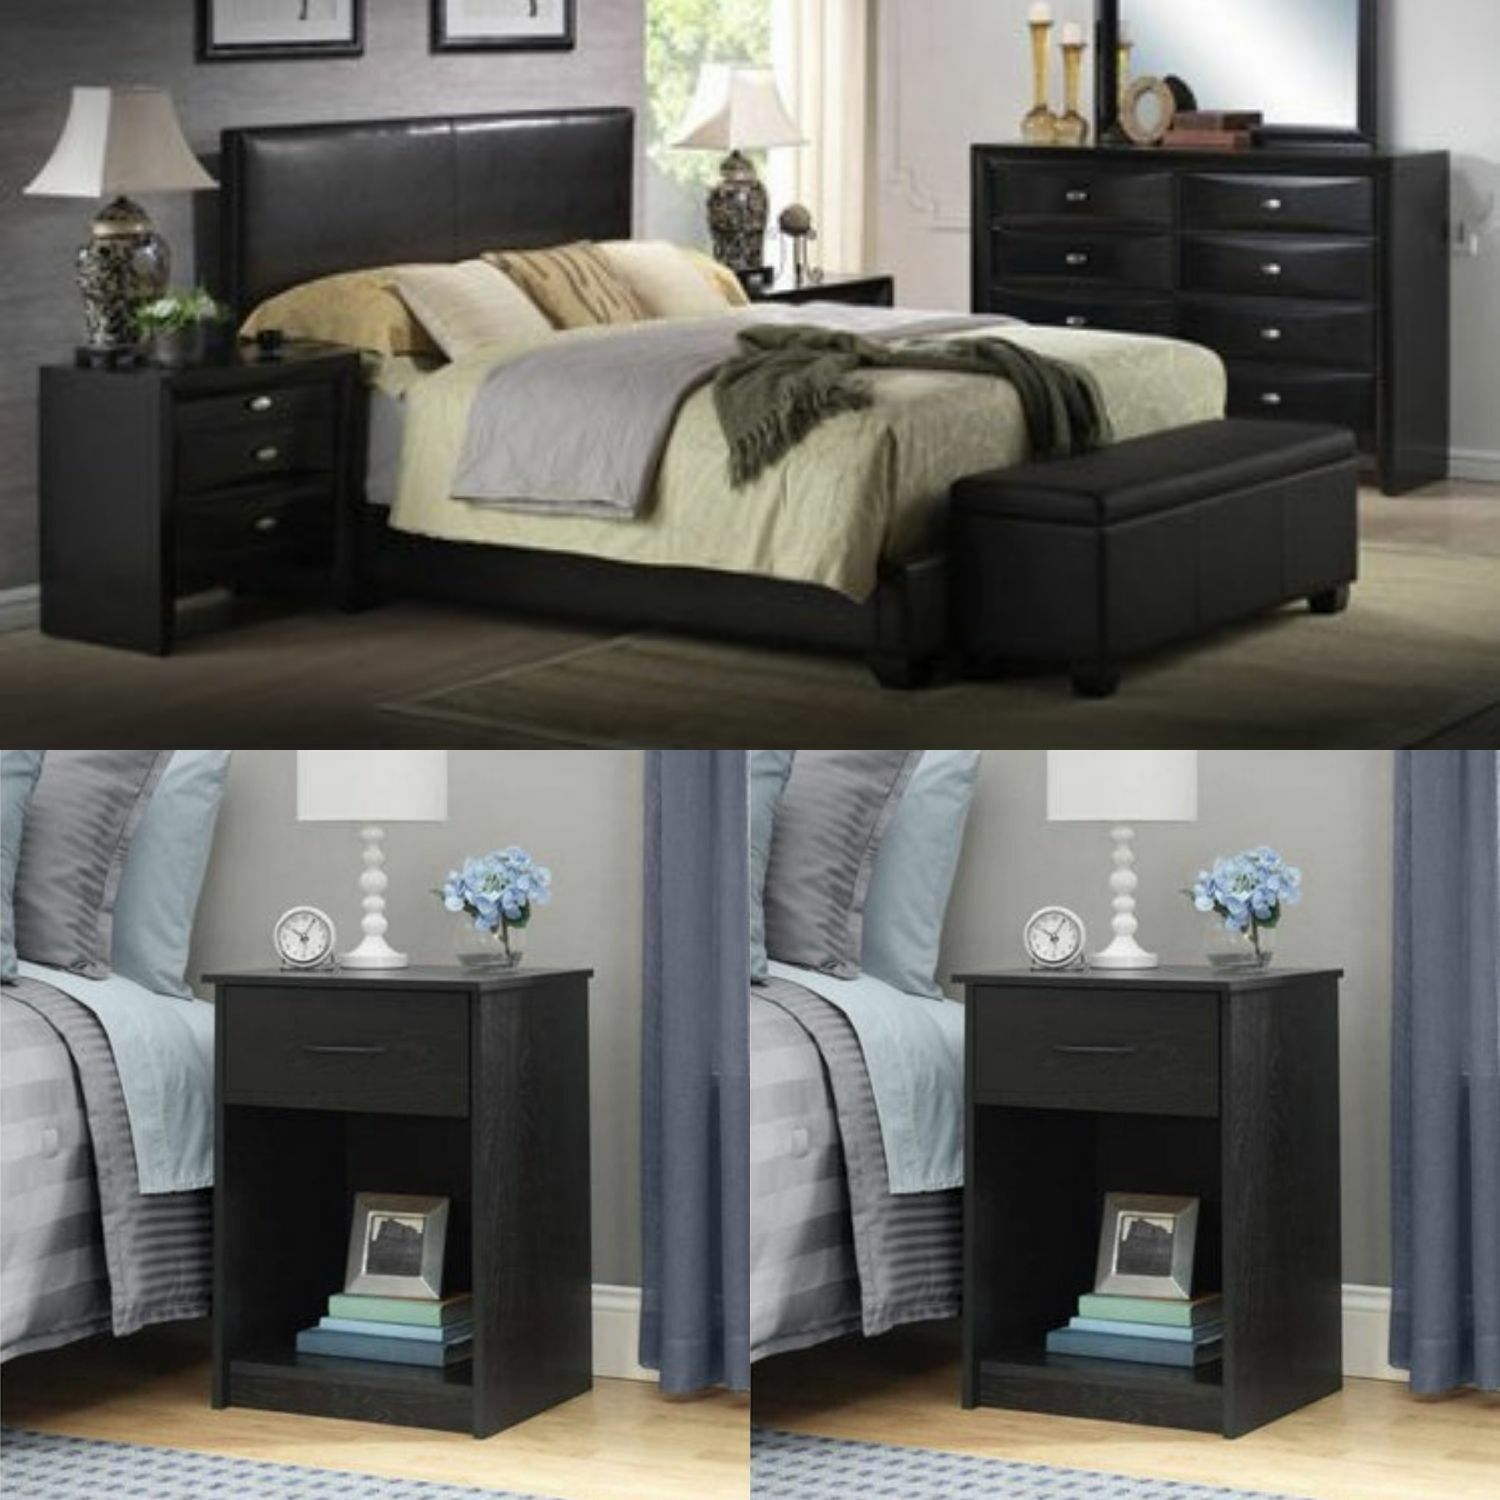 FULL SIZE BEDROOM SET Modern Design Platform Bed Headboard Nightstand  Furniture